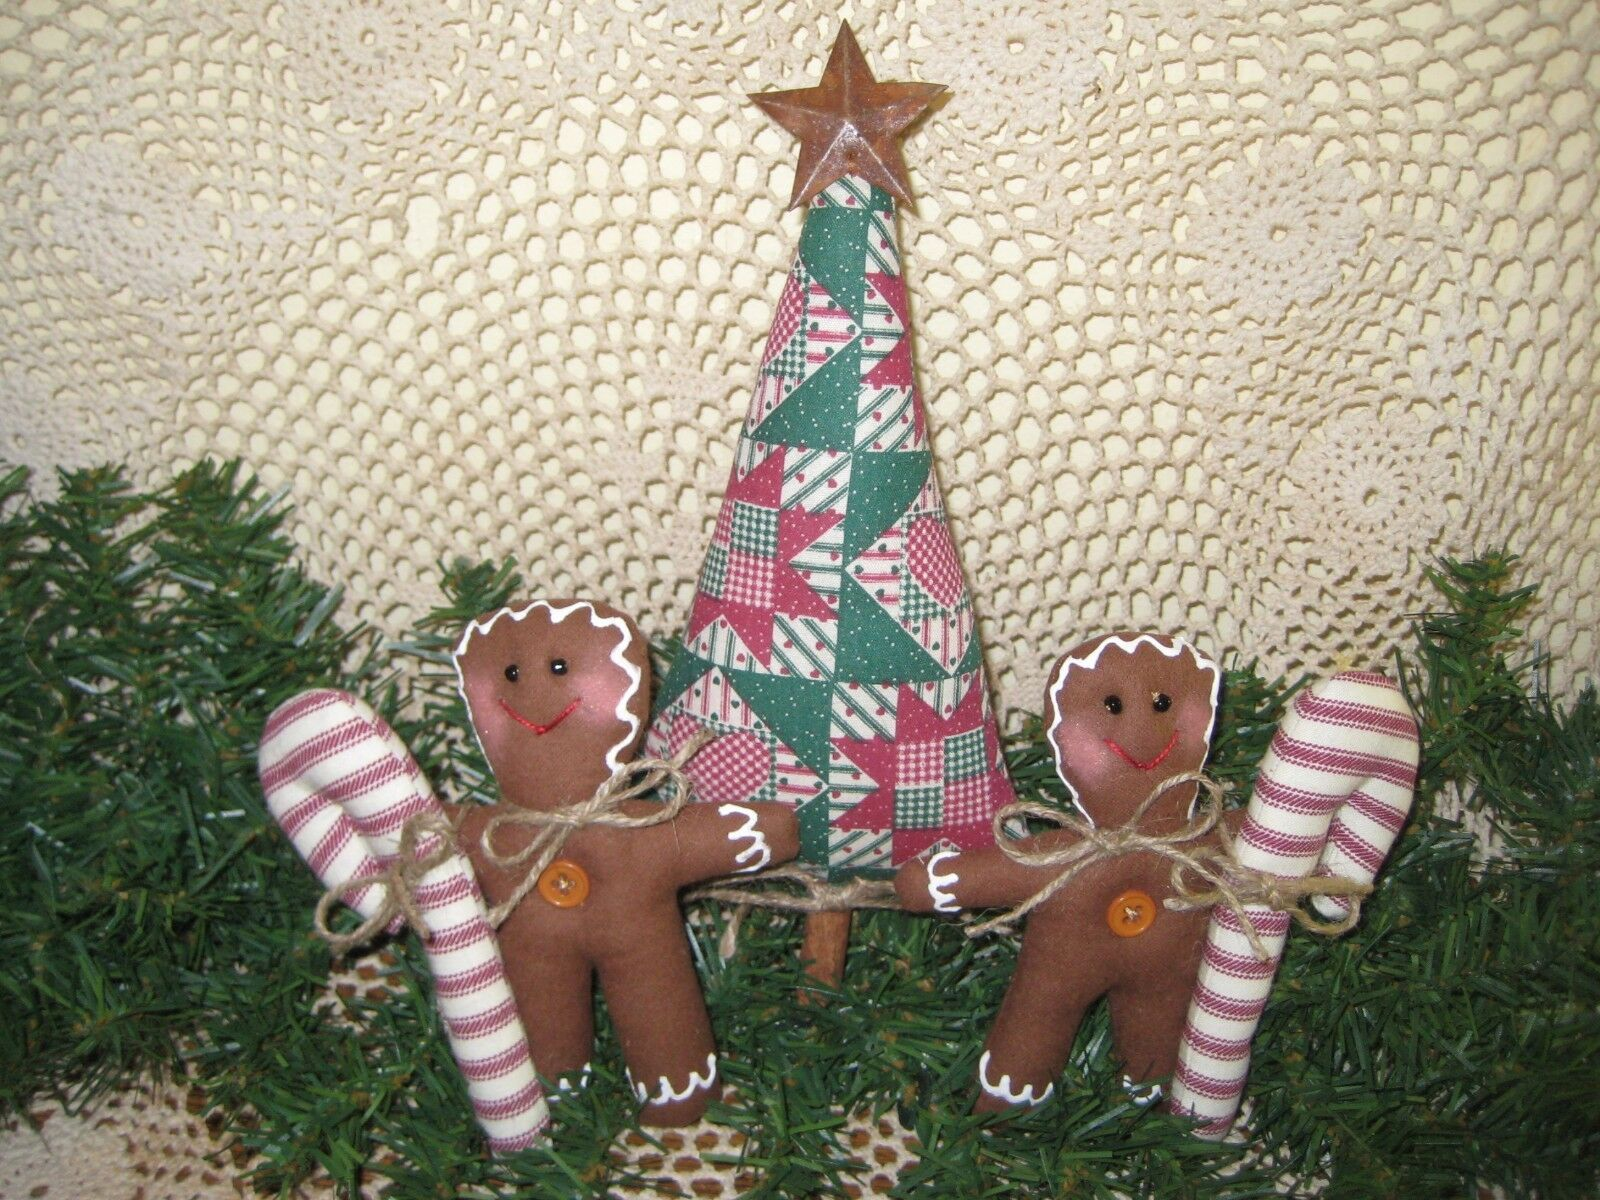 Handmade Christmas Patchwork Fabric Tree Gingerbread Candy Canes Bowl Fillers - $21.95